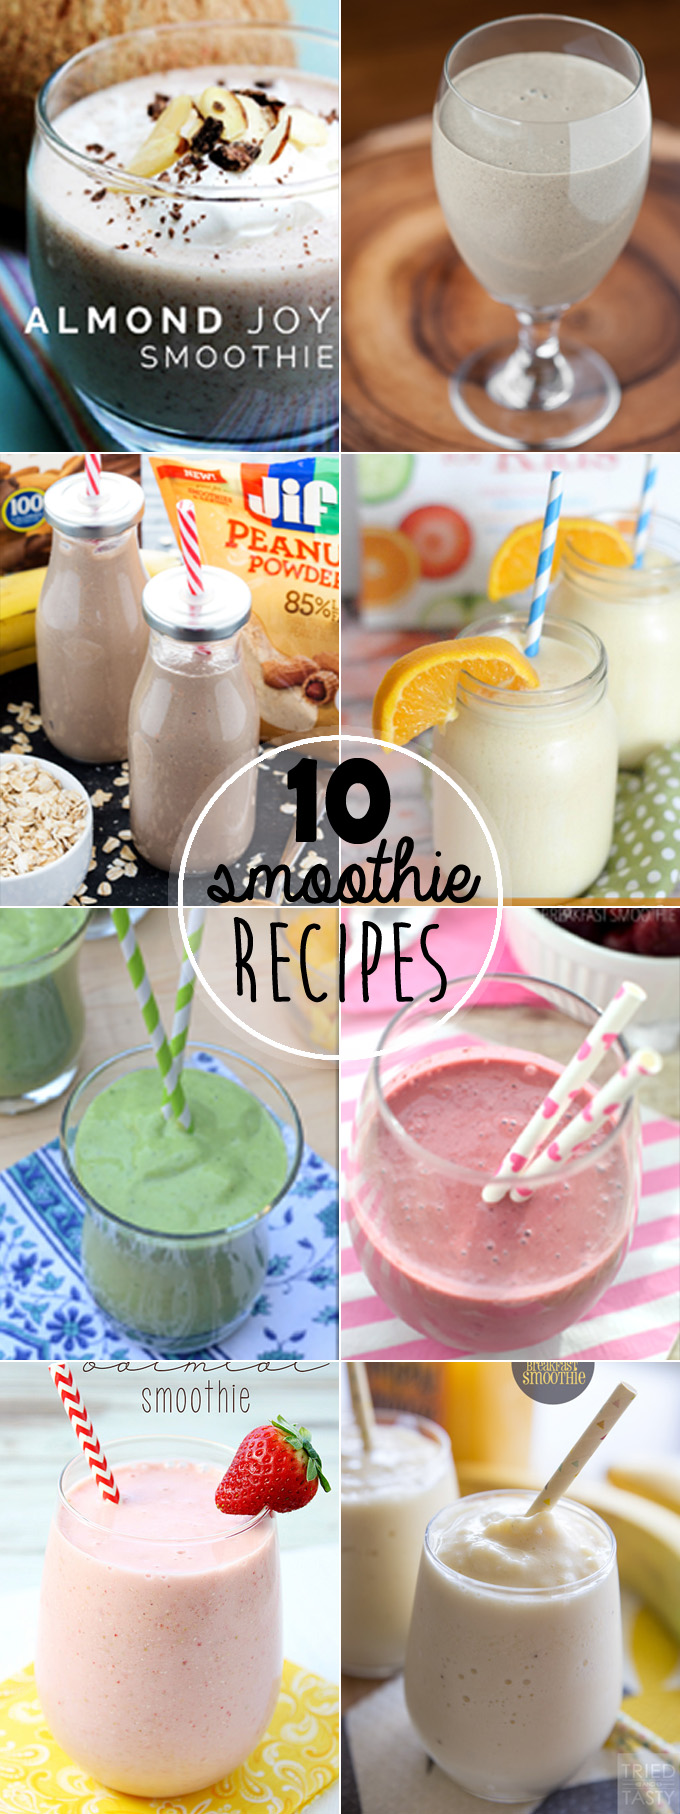 10-smoothie-recipes-pinterest